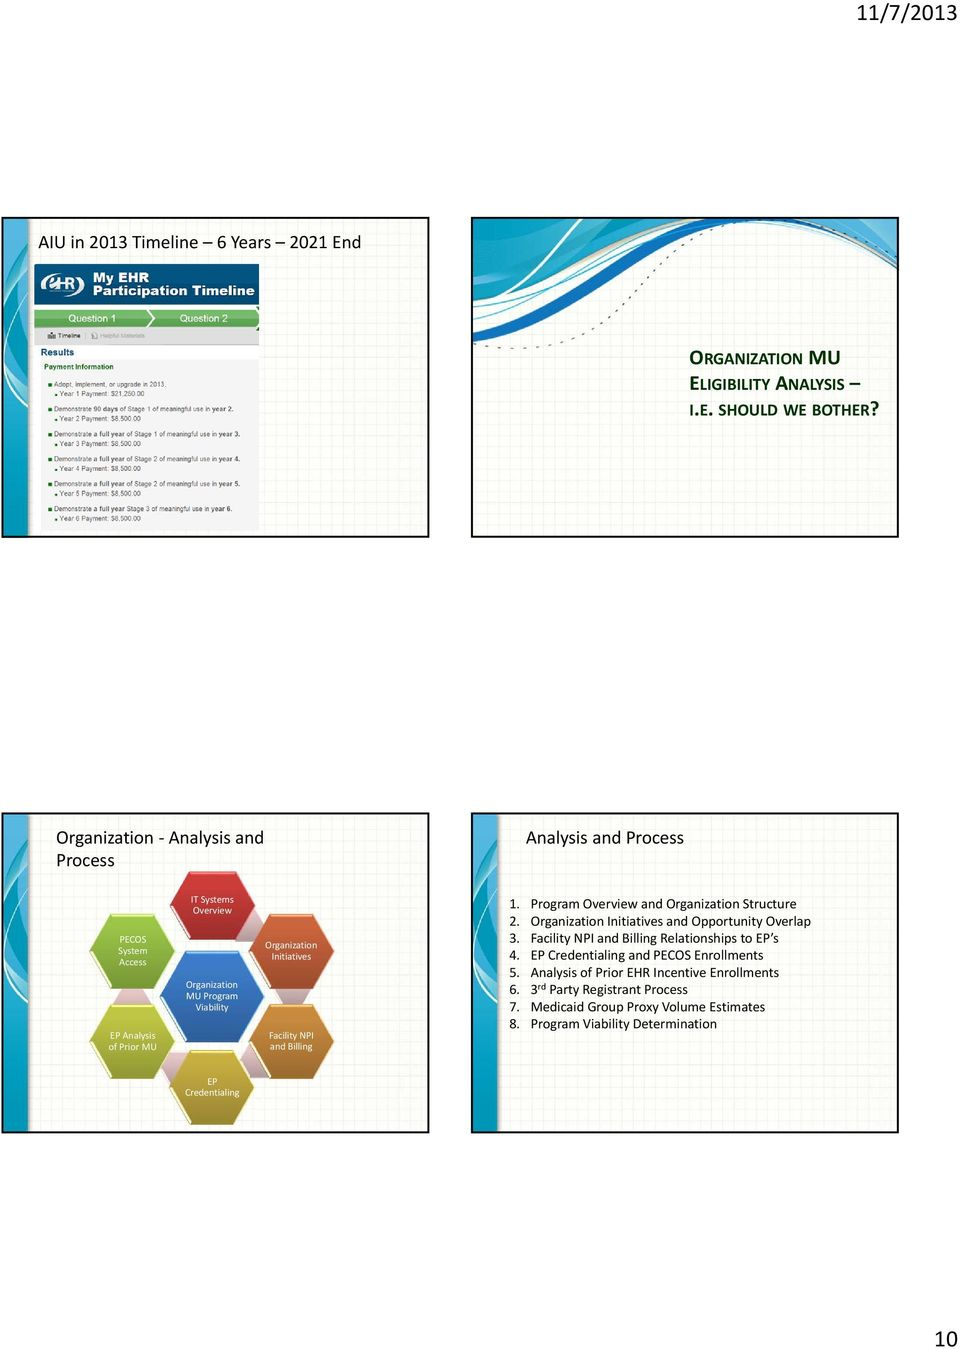 Initiatives Facility NPI and Billing 1. Program Overview and Organization Structure 2. Organization Initiatives and Opportunity Overlap 3.